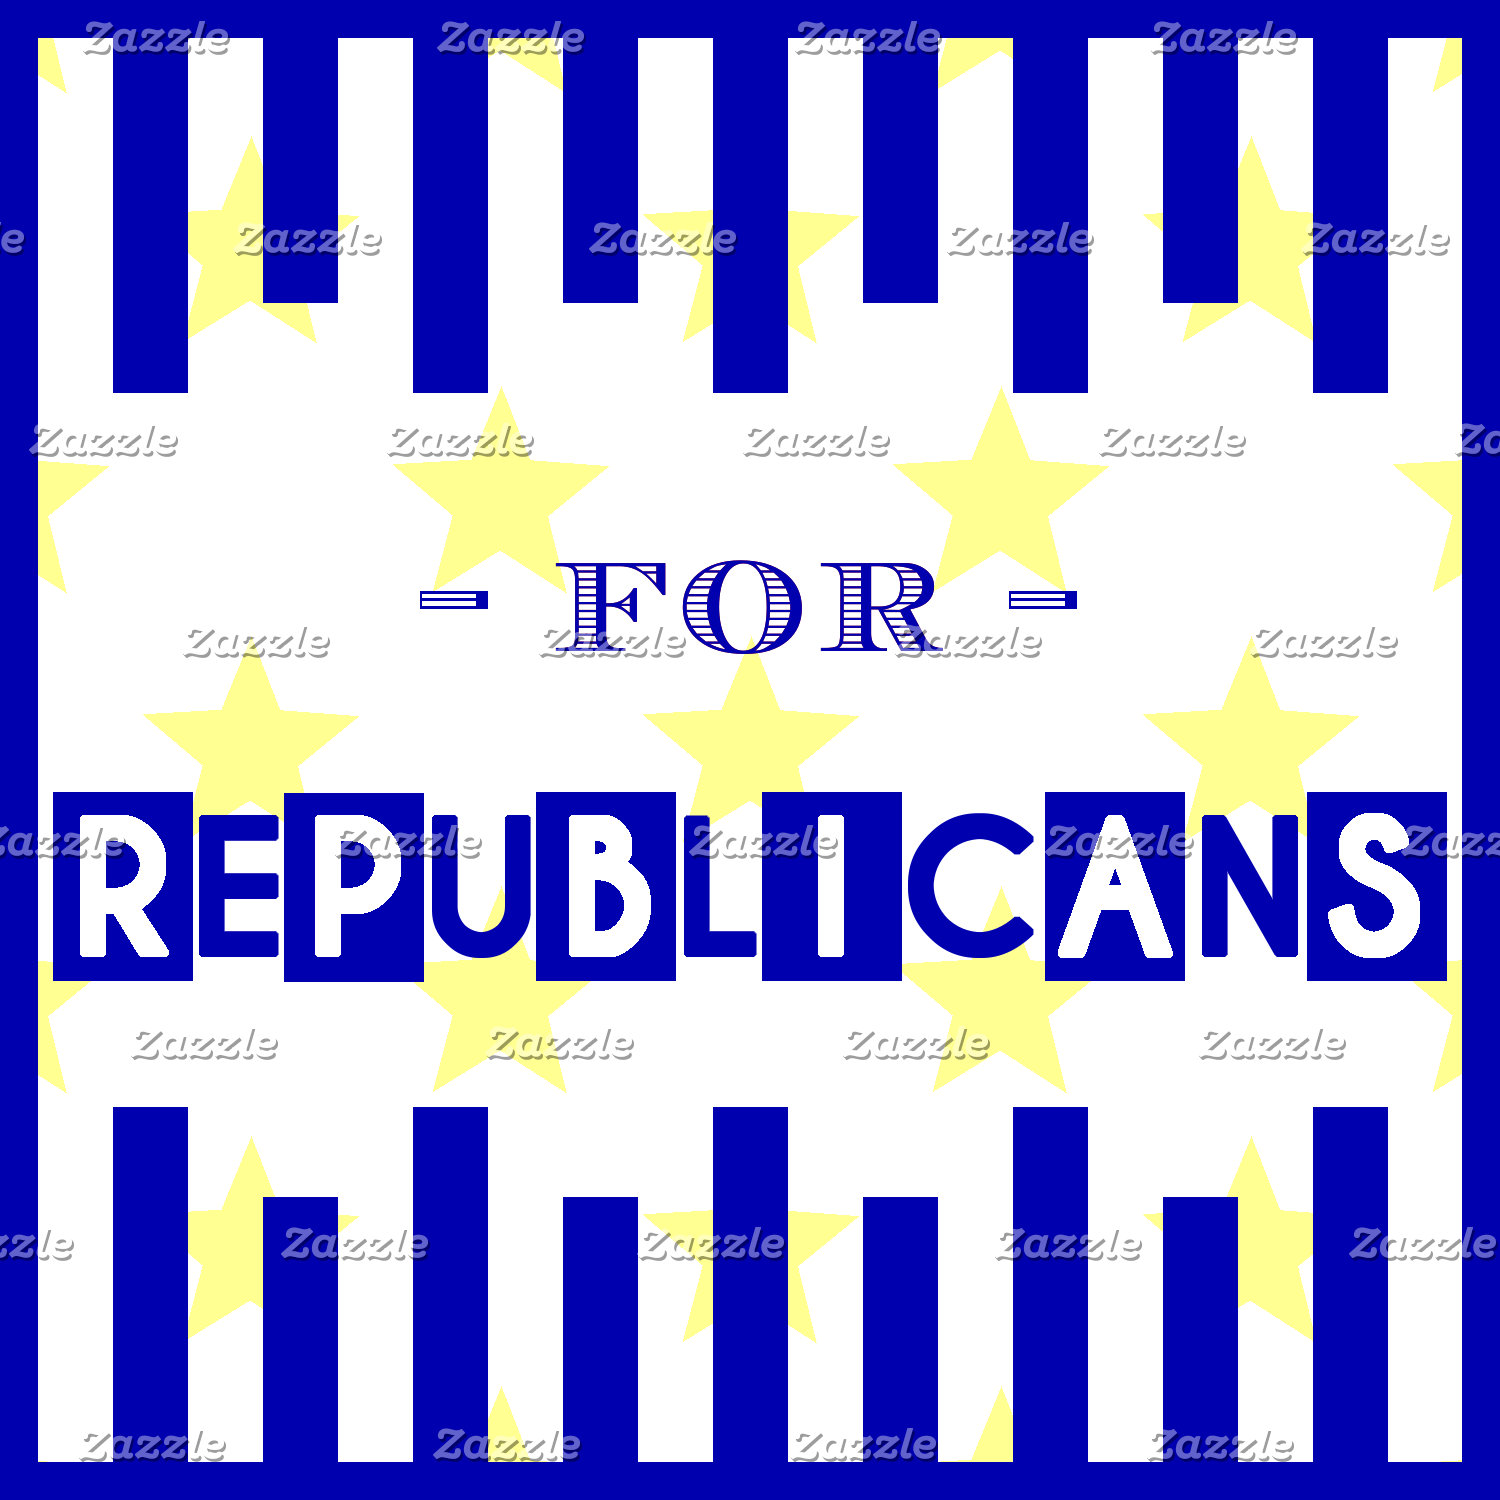 for Republicans